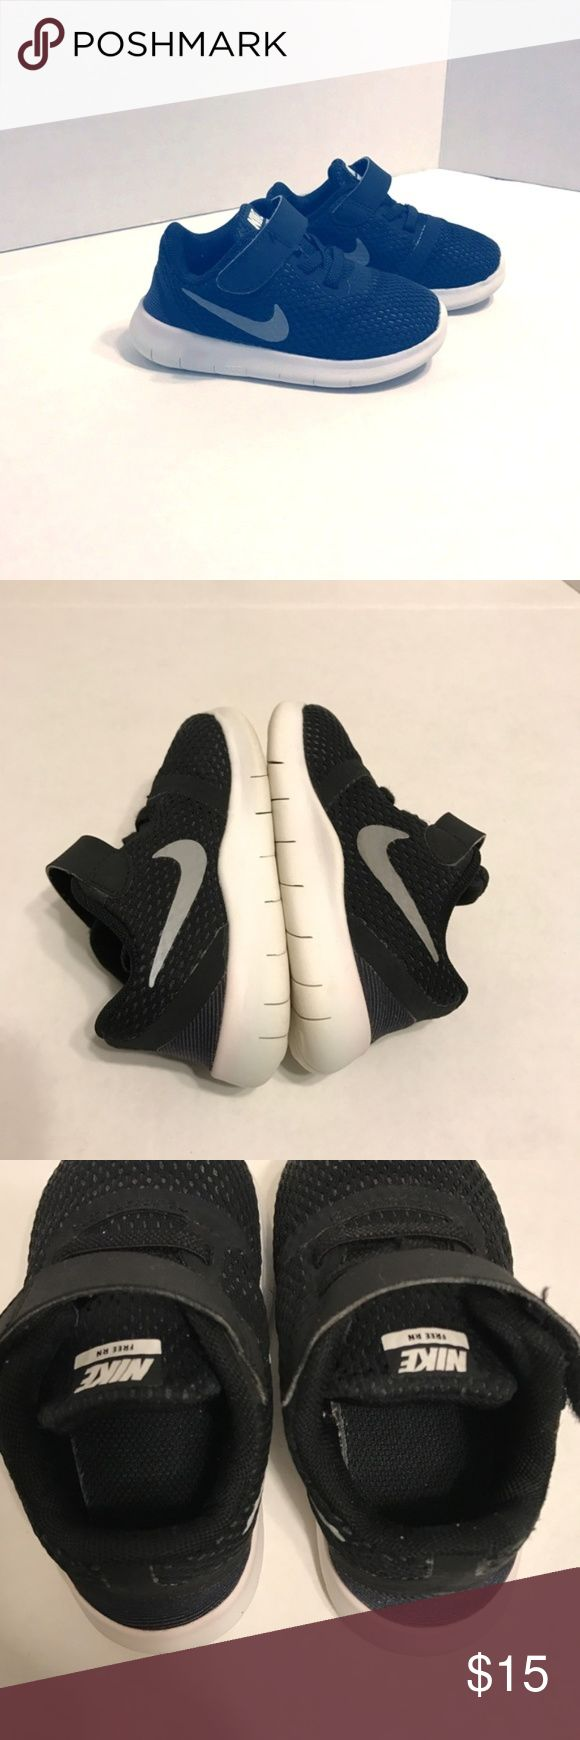 "[NIKE] Toddler Boys Size 6 Nike free RN shoes size 6c// in used condition. Lots of wear left in them! No stains or fading - smoke/pet free home. Outer sole-6"". Velcro tie. Very flexible sole. **New mommy cleaning out closets! Make an offer and it's yours!** Nike Shoes Sneakers"